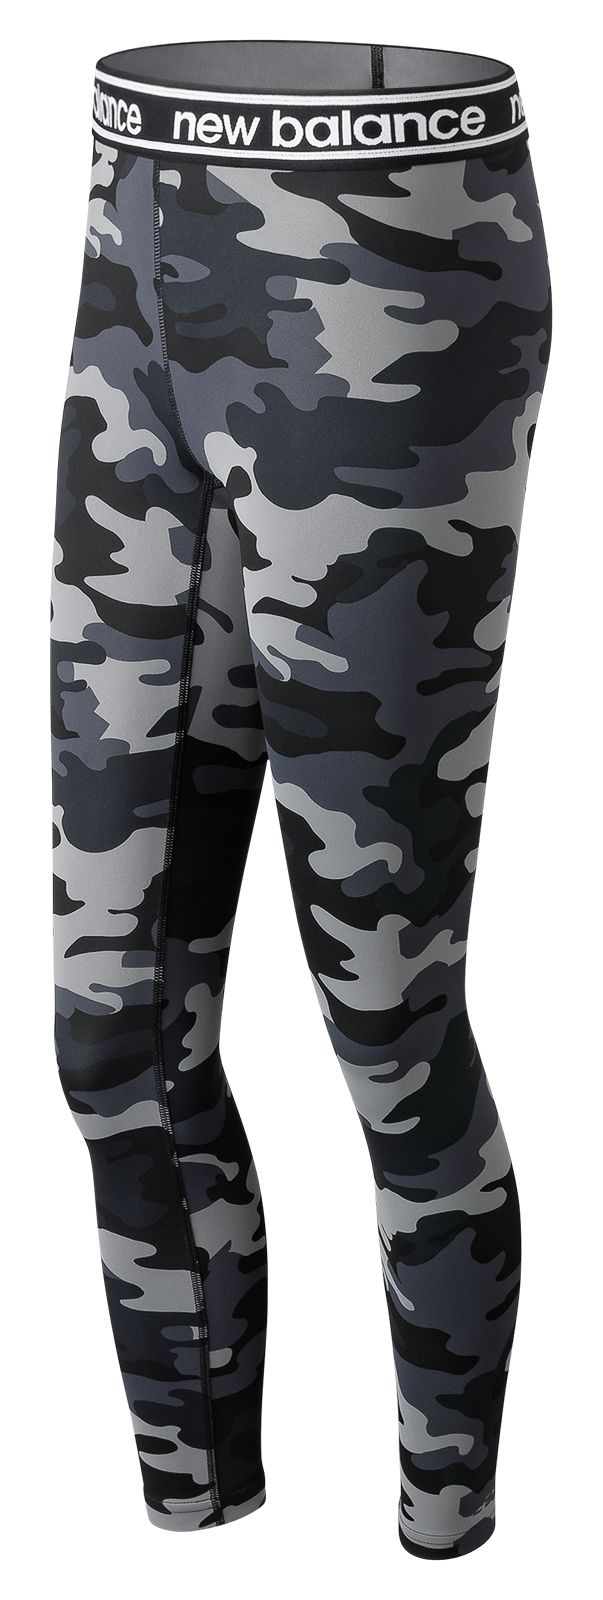 Women's Printed Accelerate Tight